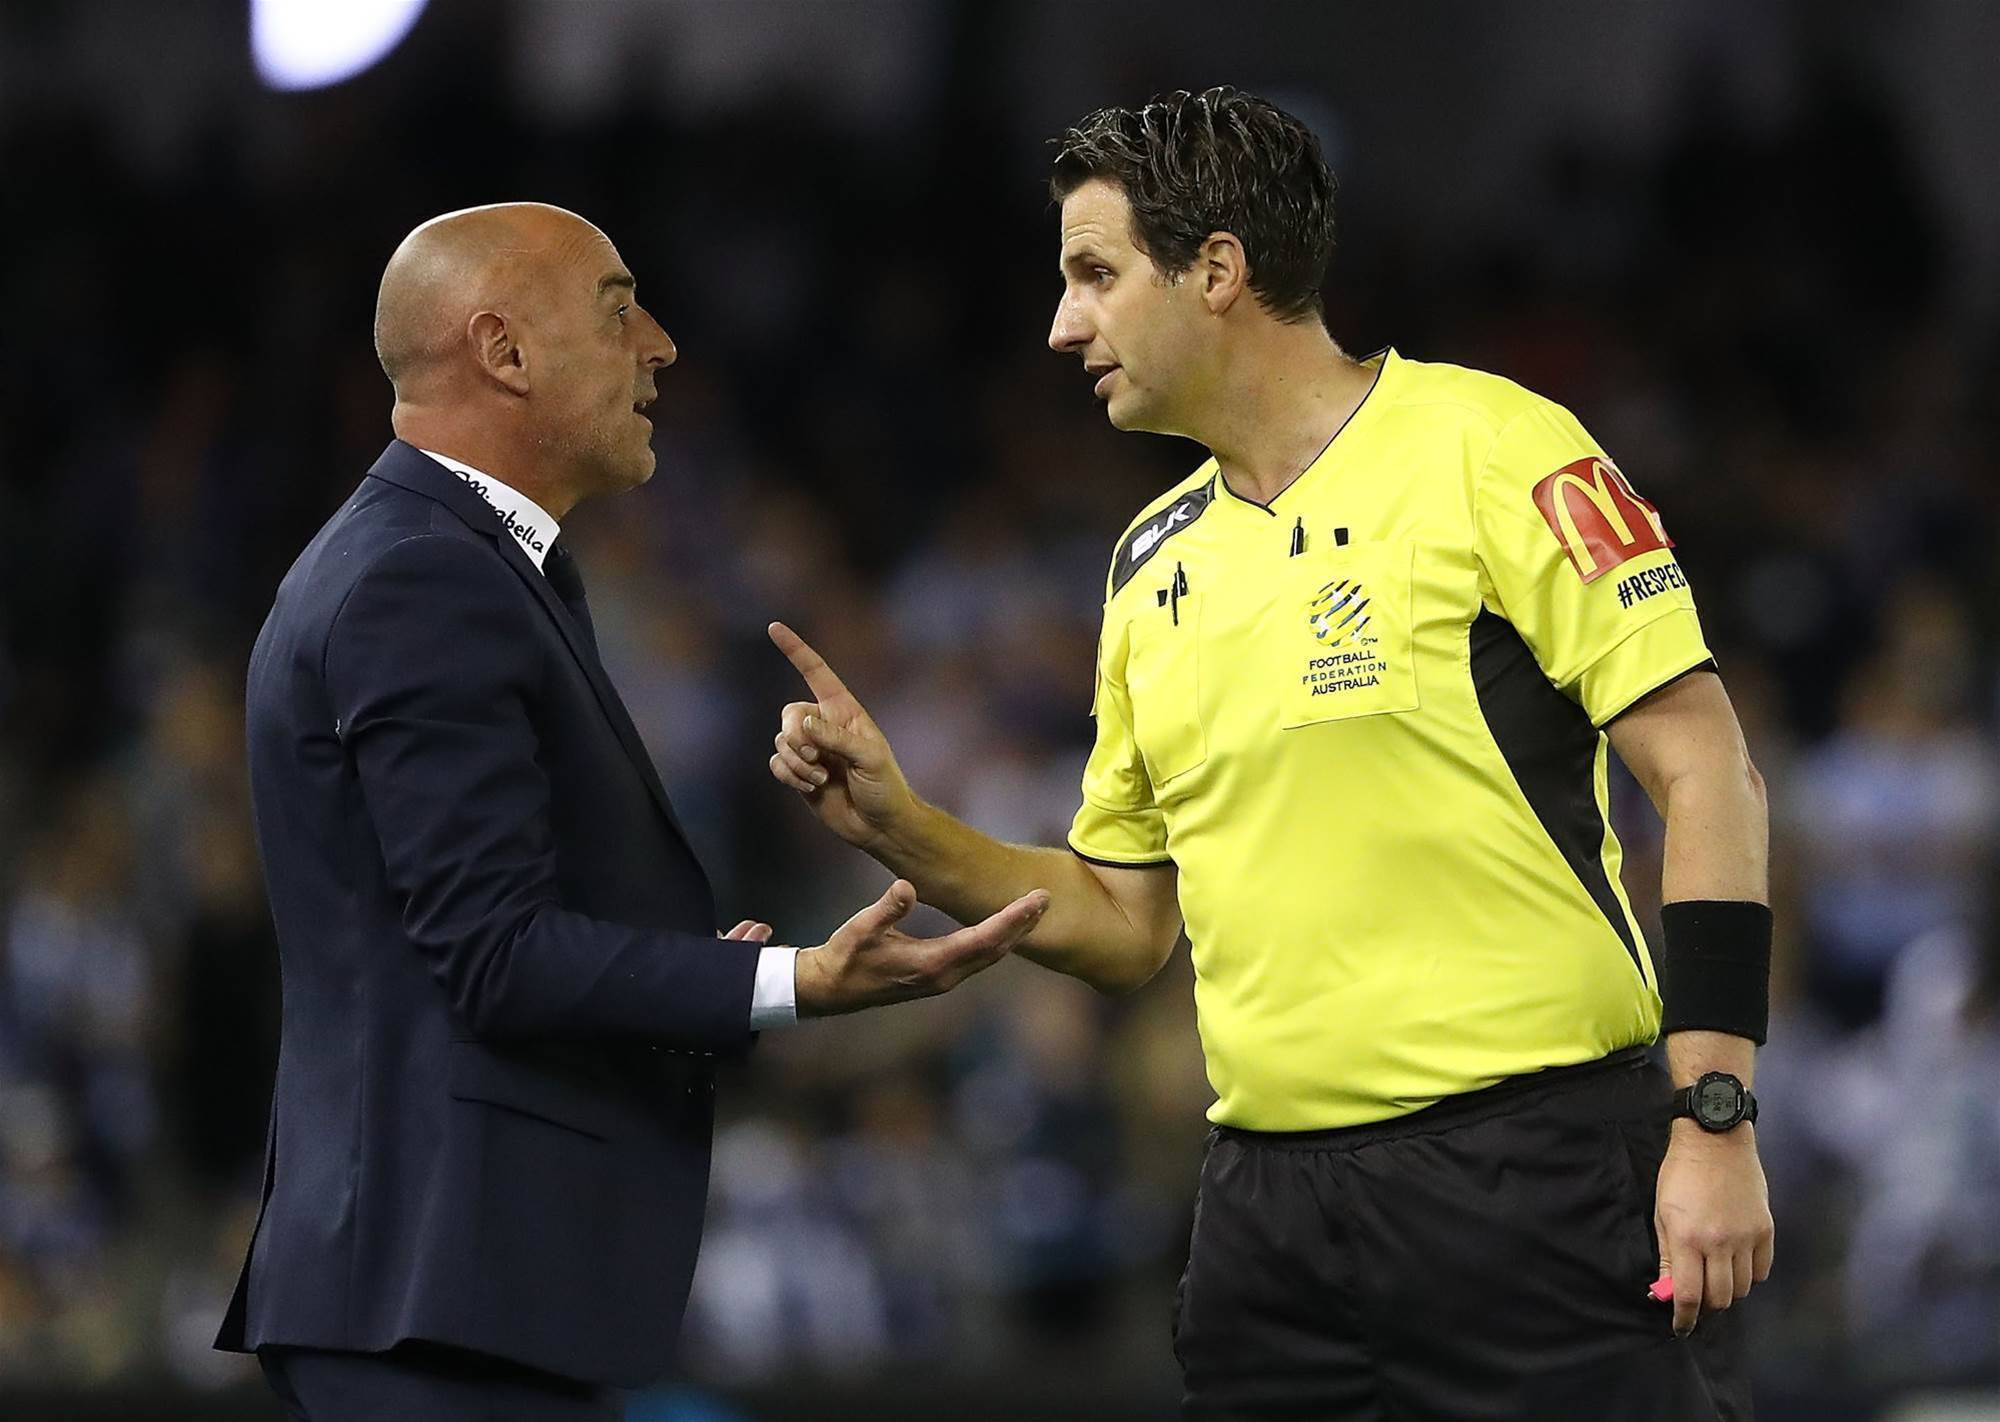 FFA to trial yellow/red cards for coaches